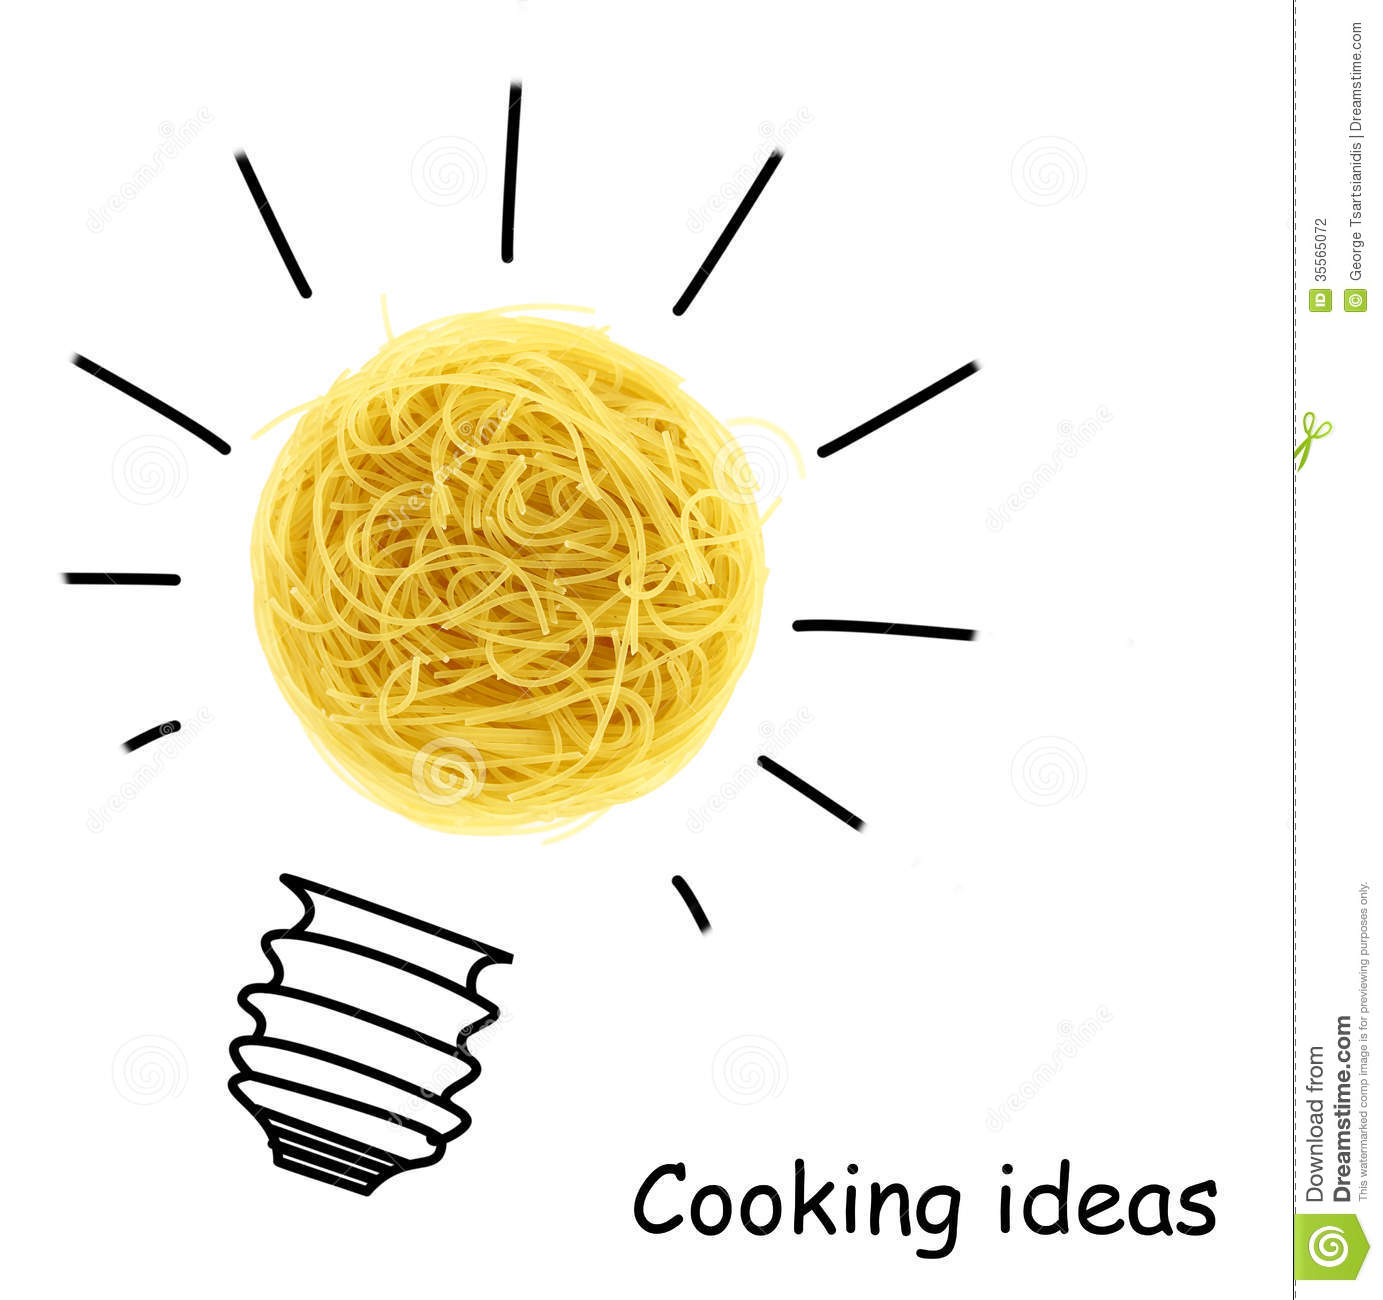 Creative cooking ideas, pasta with bulb drawing